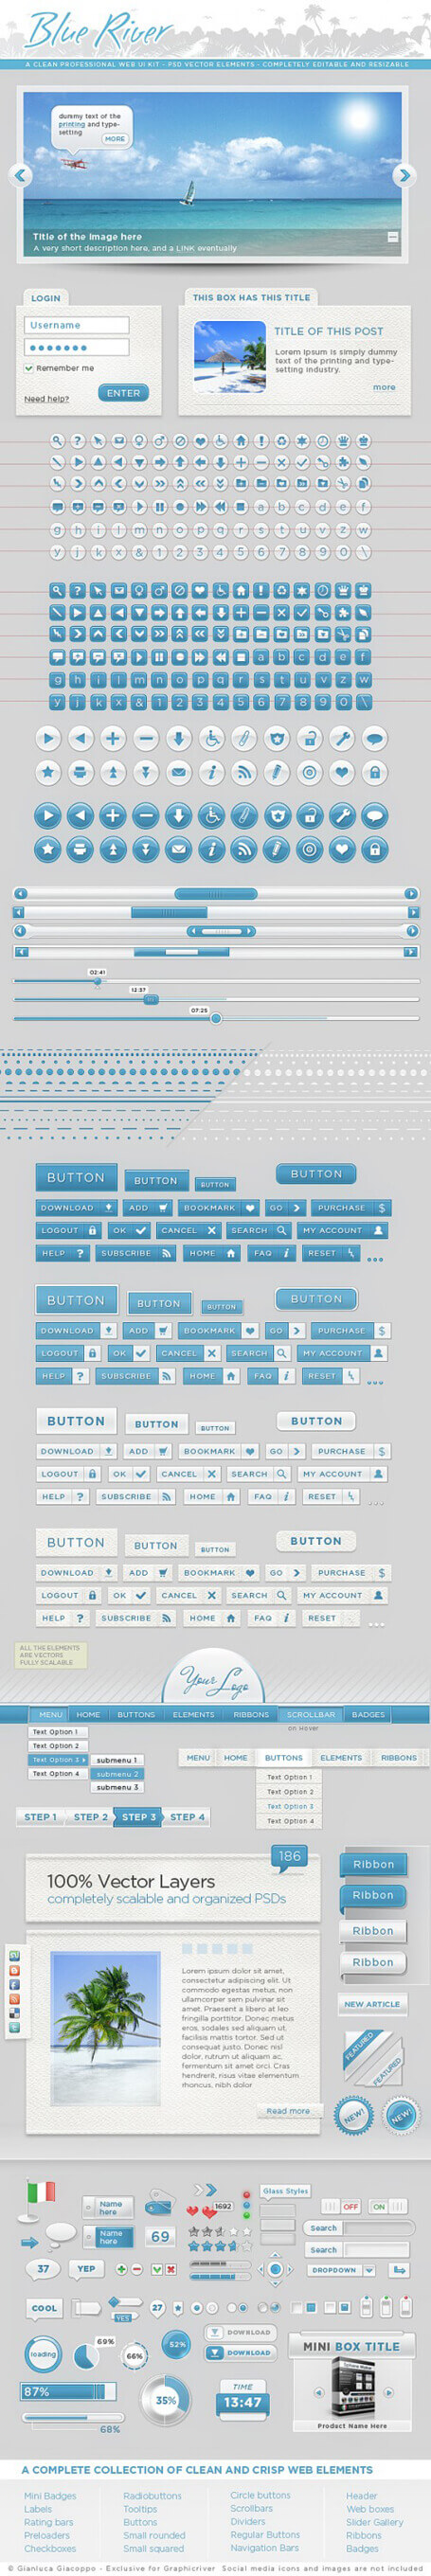 Web Graphic Kit UI elements by ~Giallo86